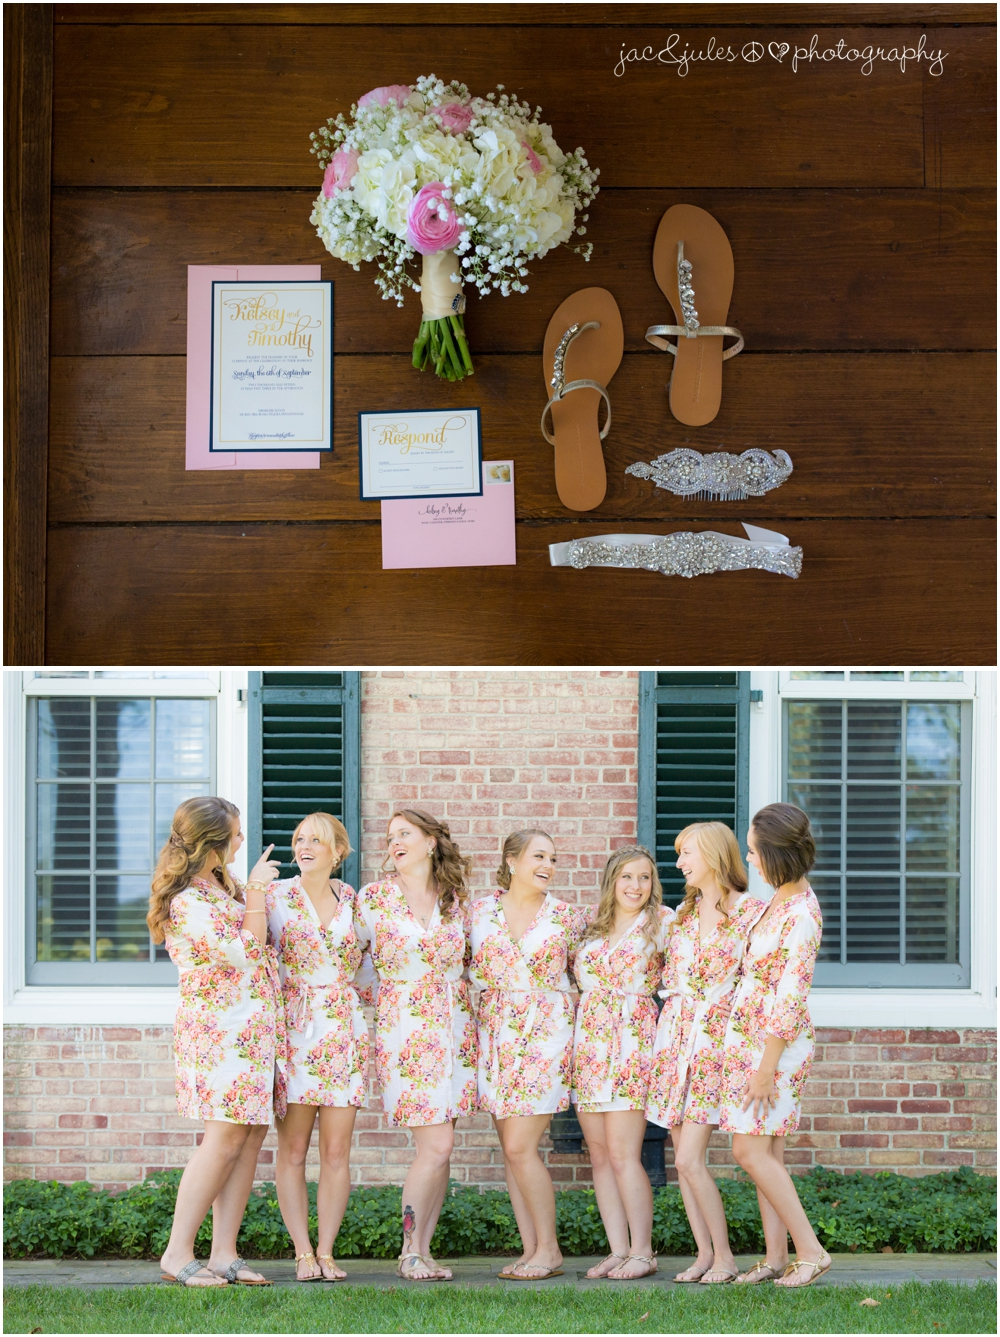 rustic wedding at drumore estate in pa by jacnjules photography